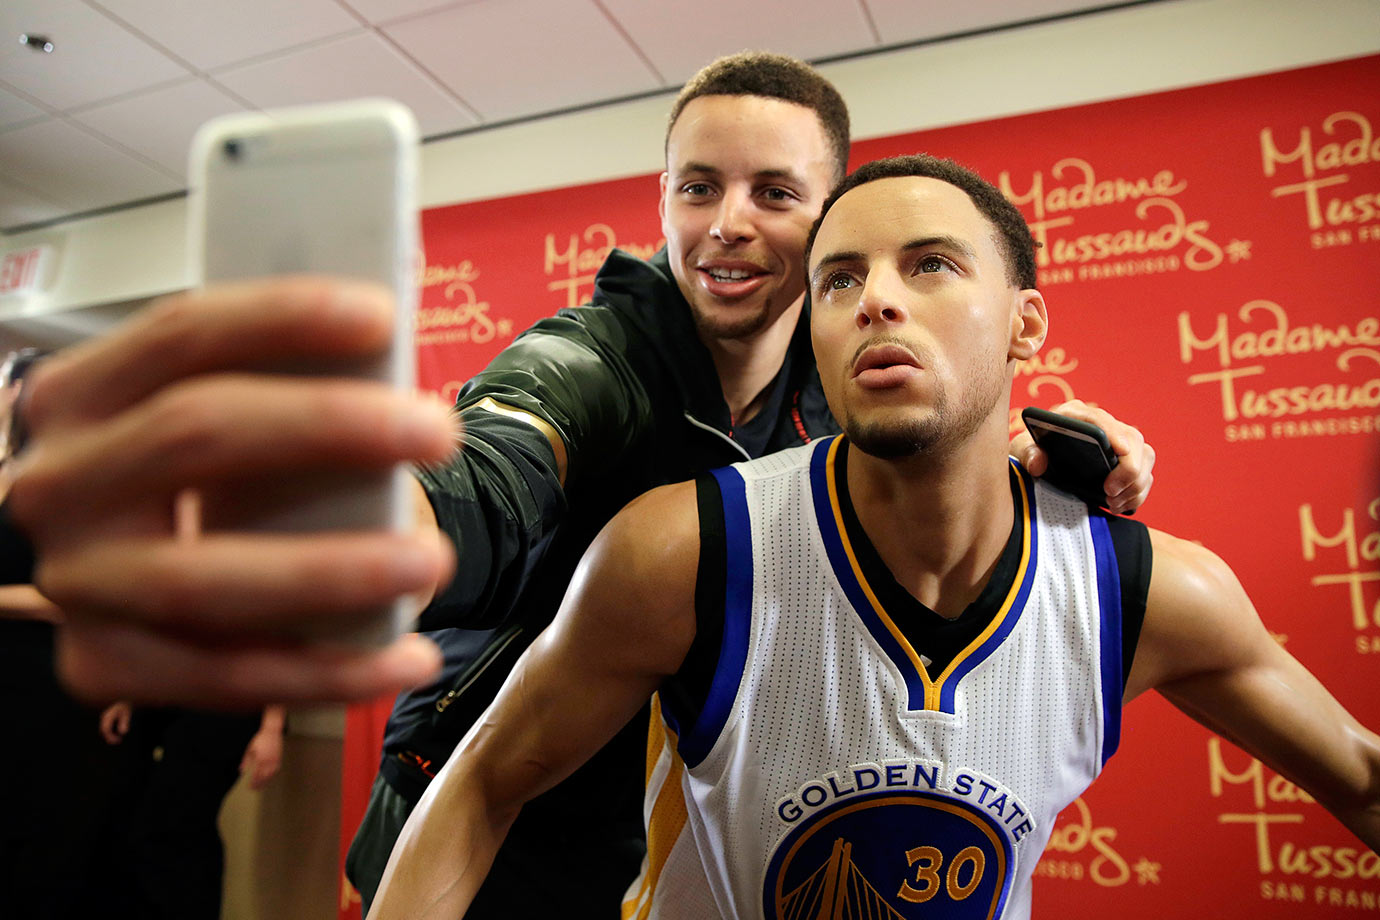 Golden State Warriors guard Stephen Curry takes a selfie with his wax figure by Madame Tussauds after its unveiling in Oakland, Calif.